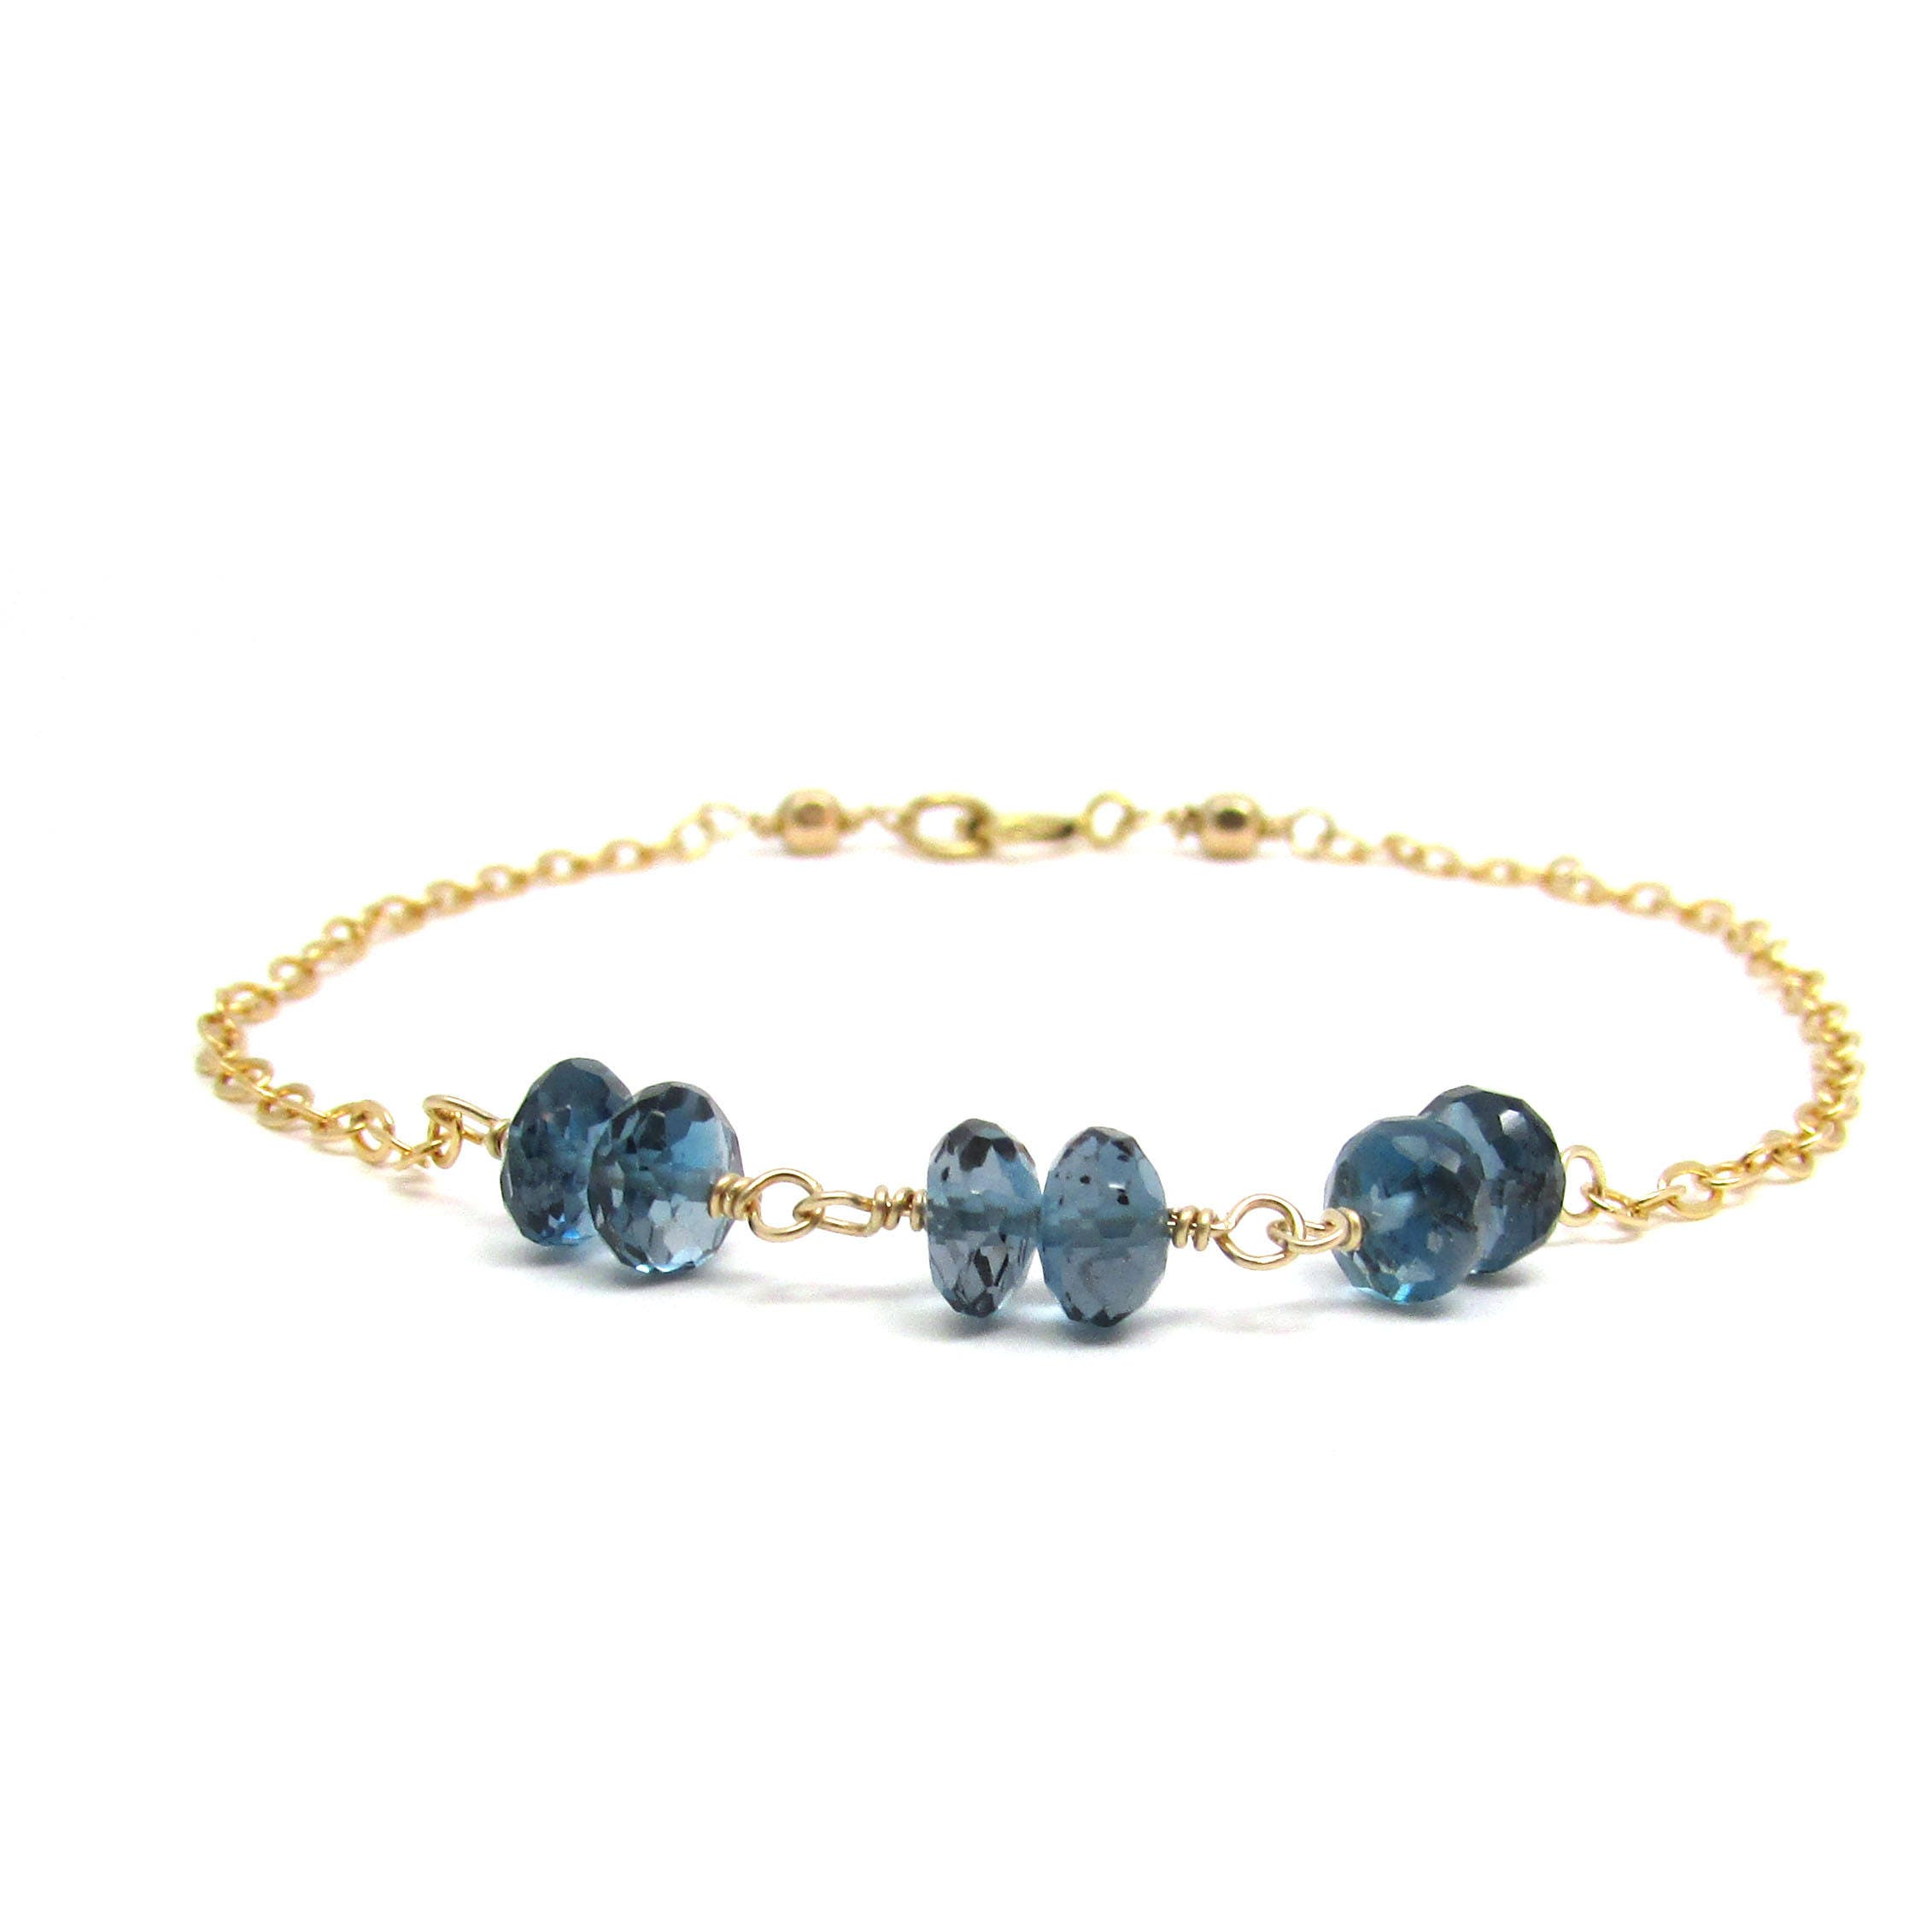 London Blue Topaz Bracelet December Birthstone Bracelet Gold